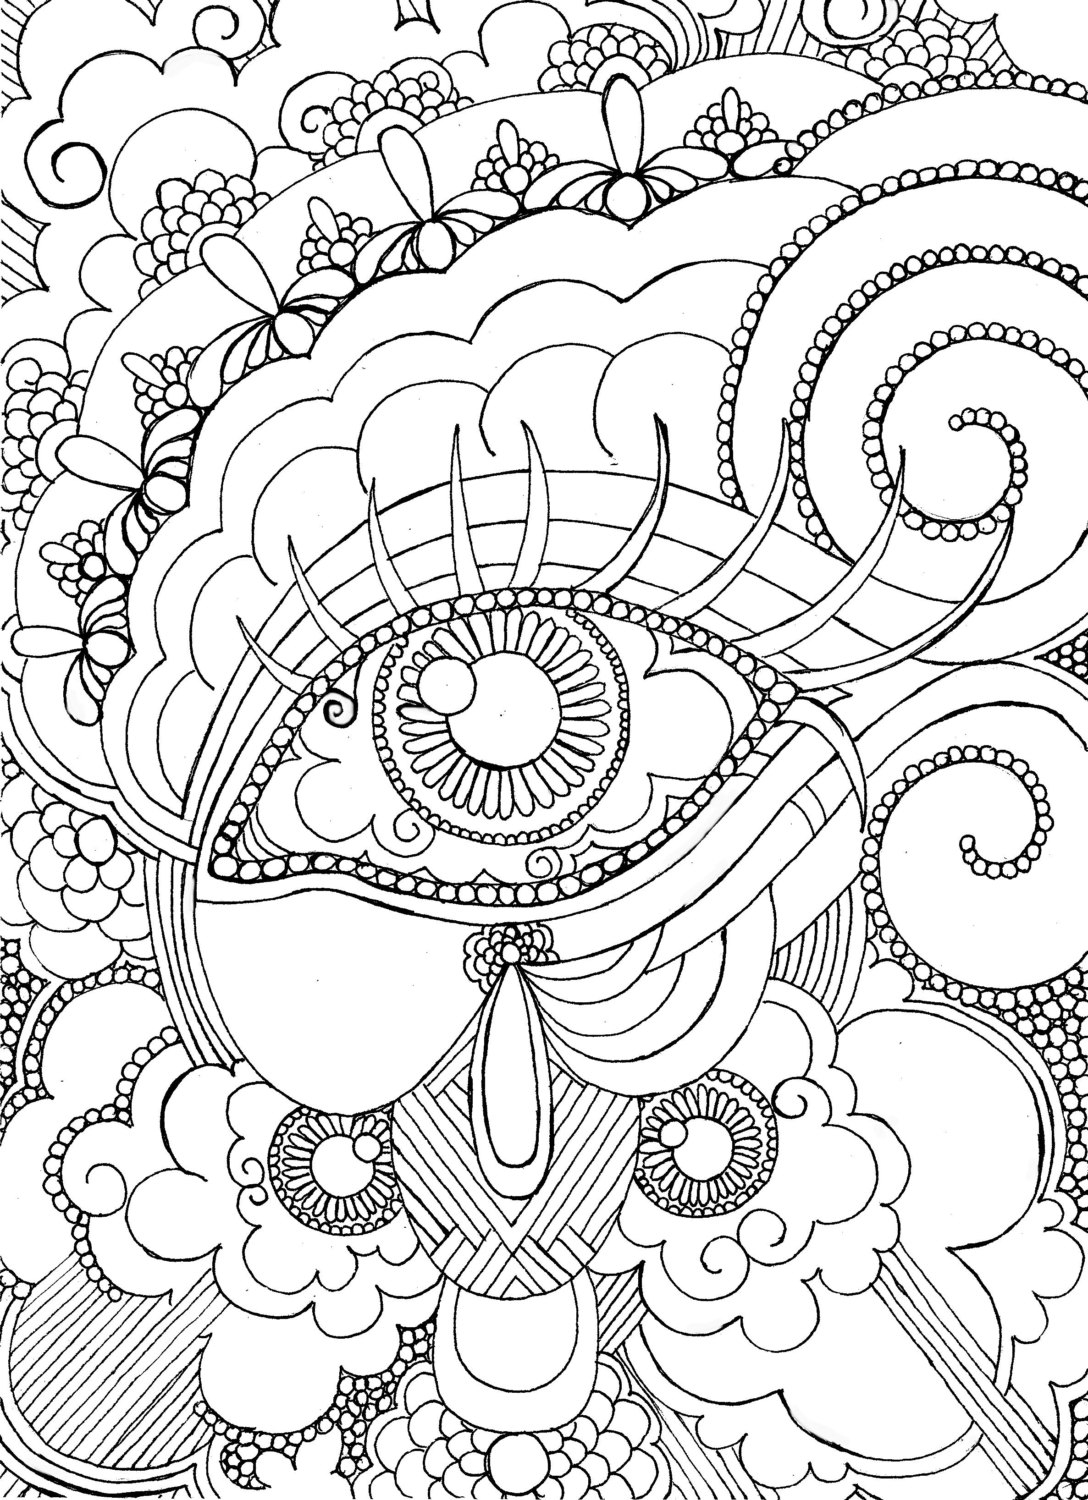 Adult Coloring Pages Colored - Eye Want to Be Colored Adult Coloring Page Steampunk